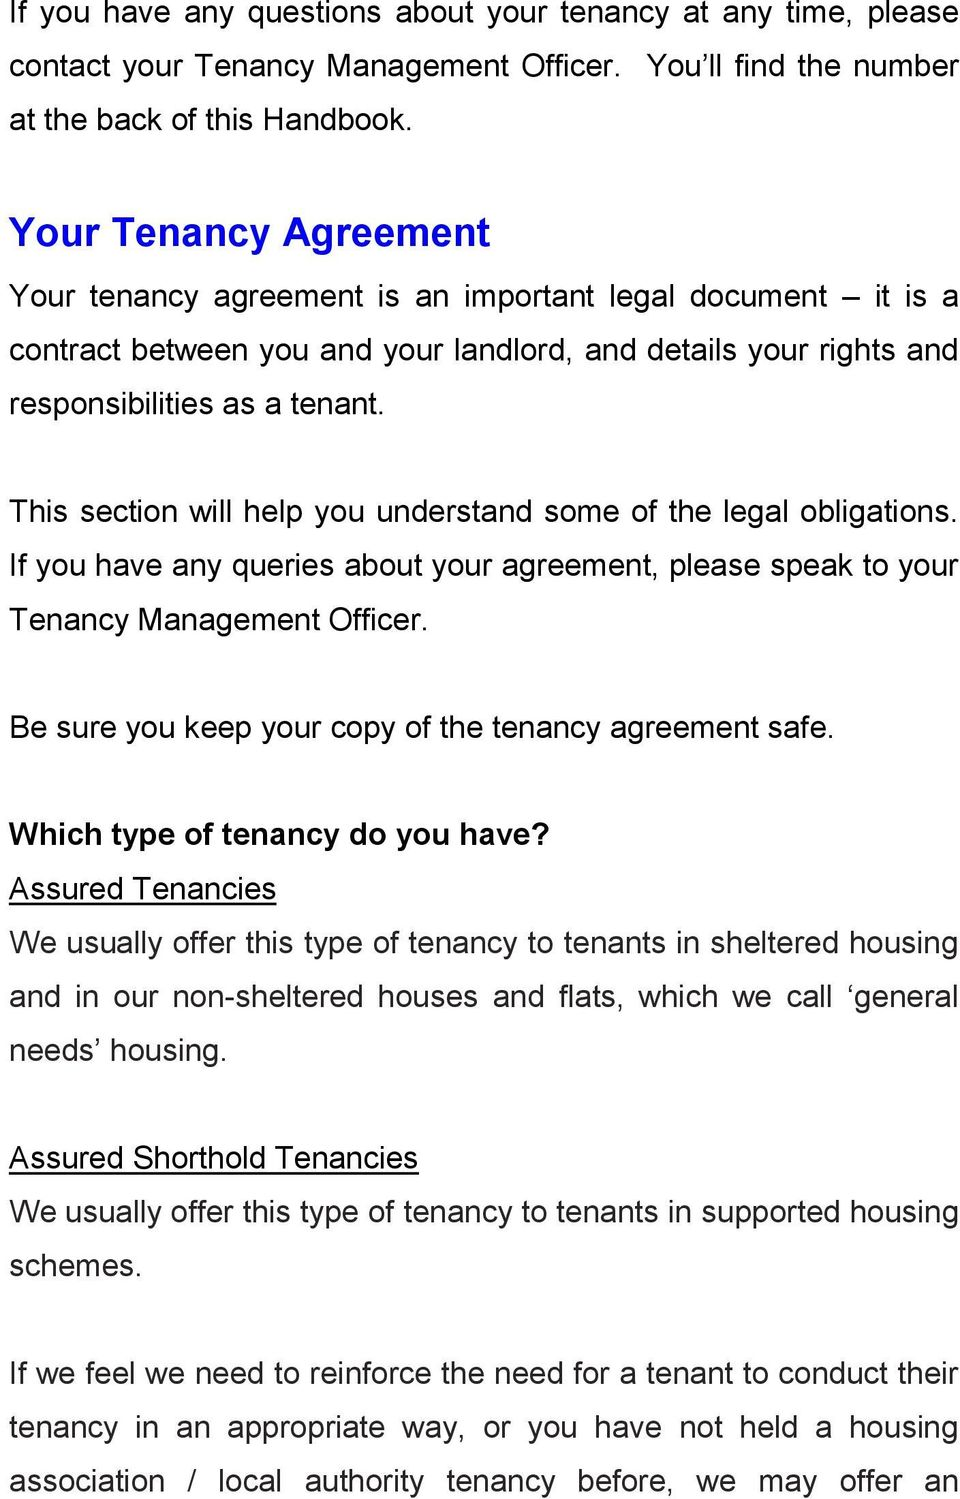 Tenants Handbook For Residents In Houses Flats Welcome To Luton